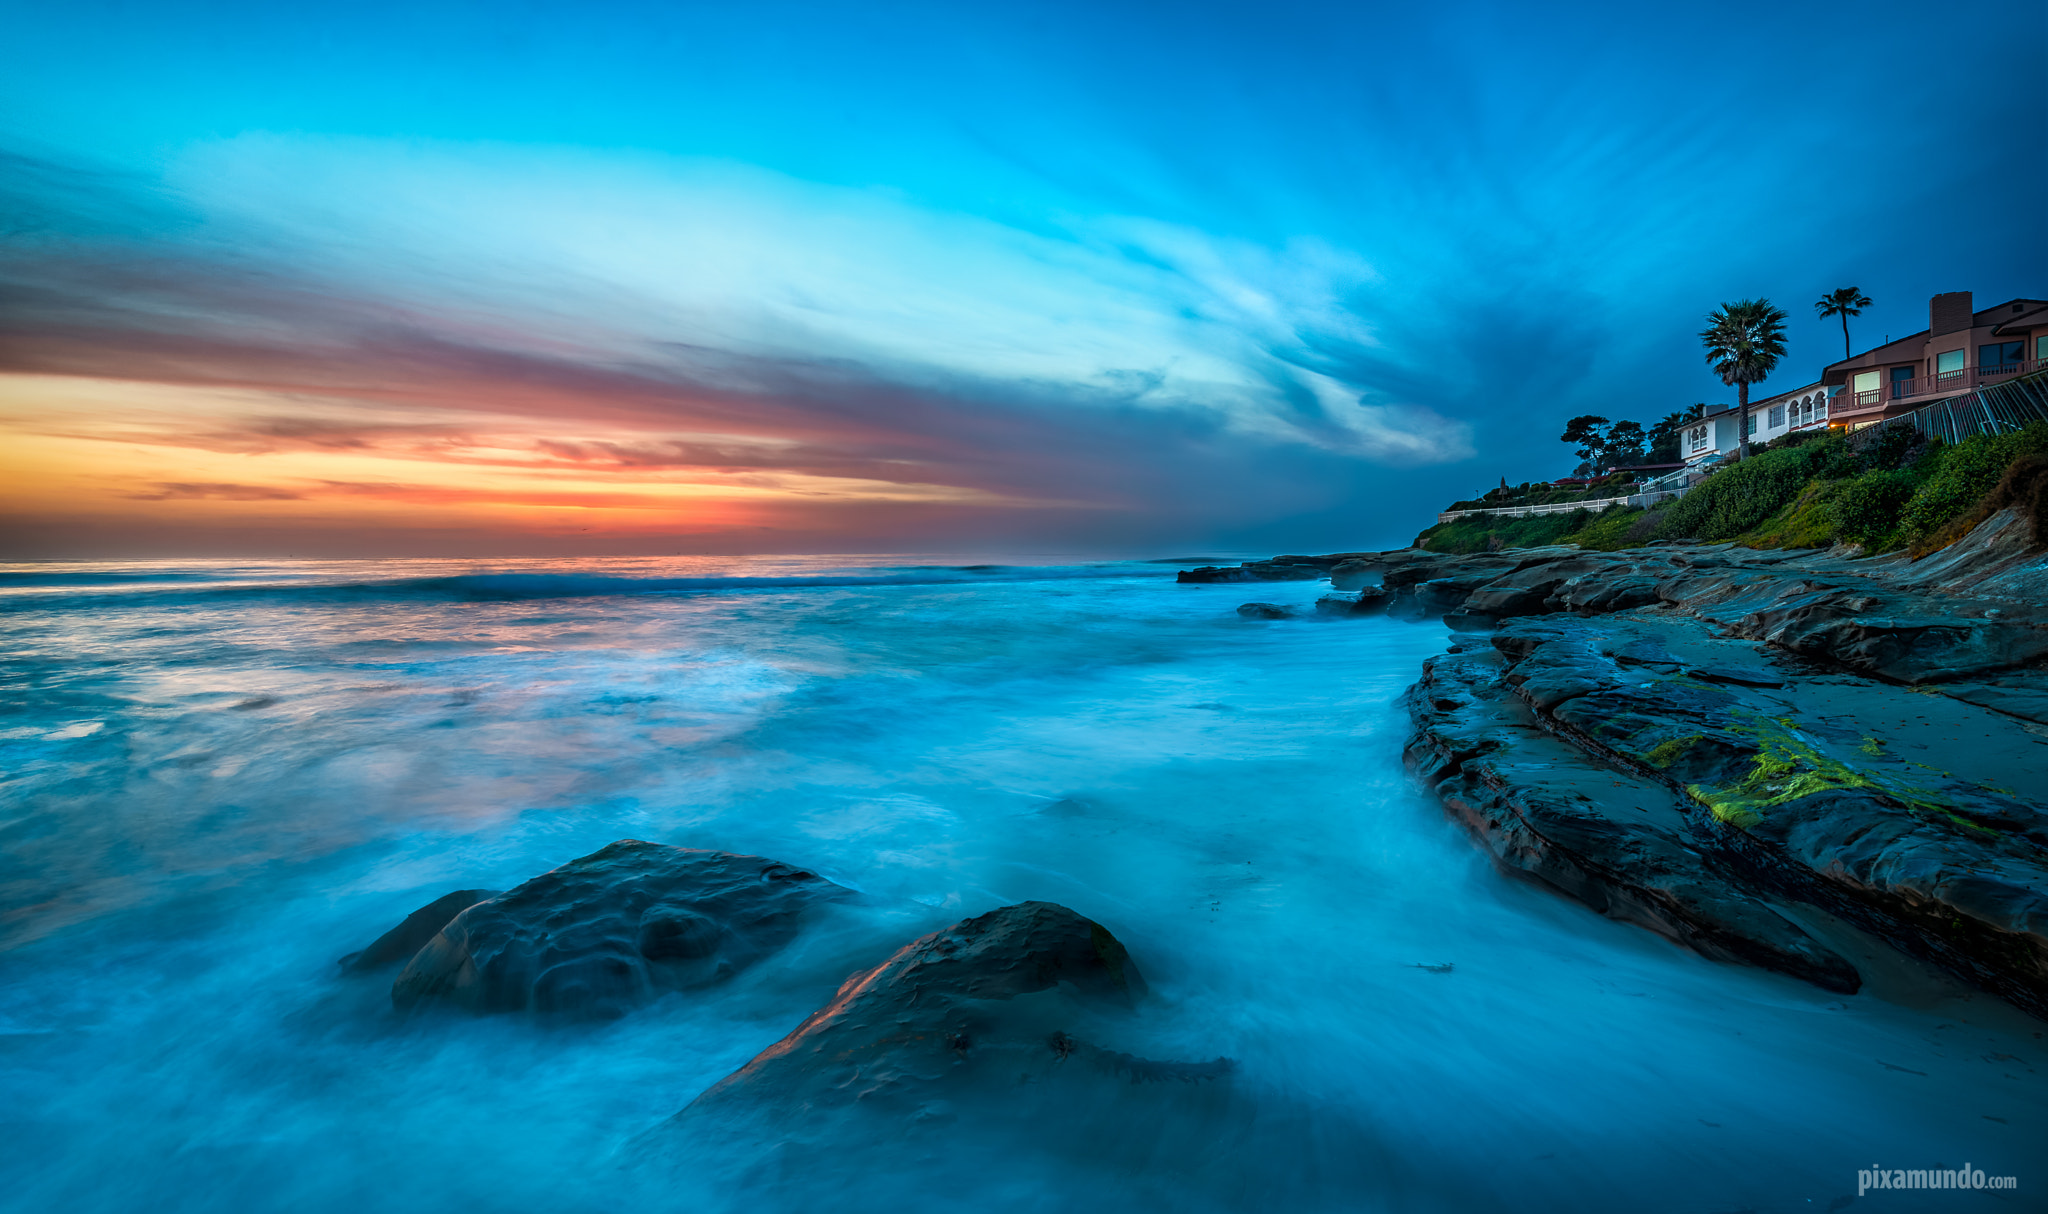 Photograph Fiery Sky Over The Blue La Jolla Beach by Pixamundo  on 500px